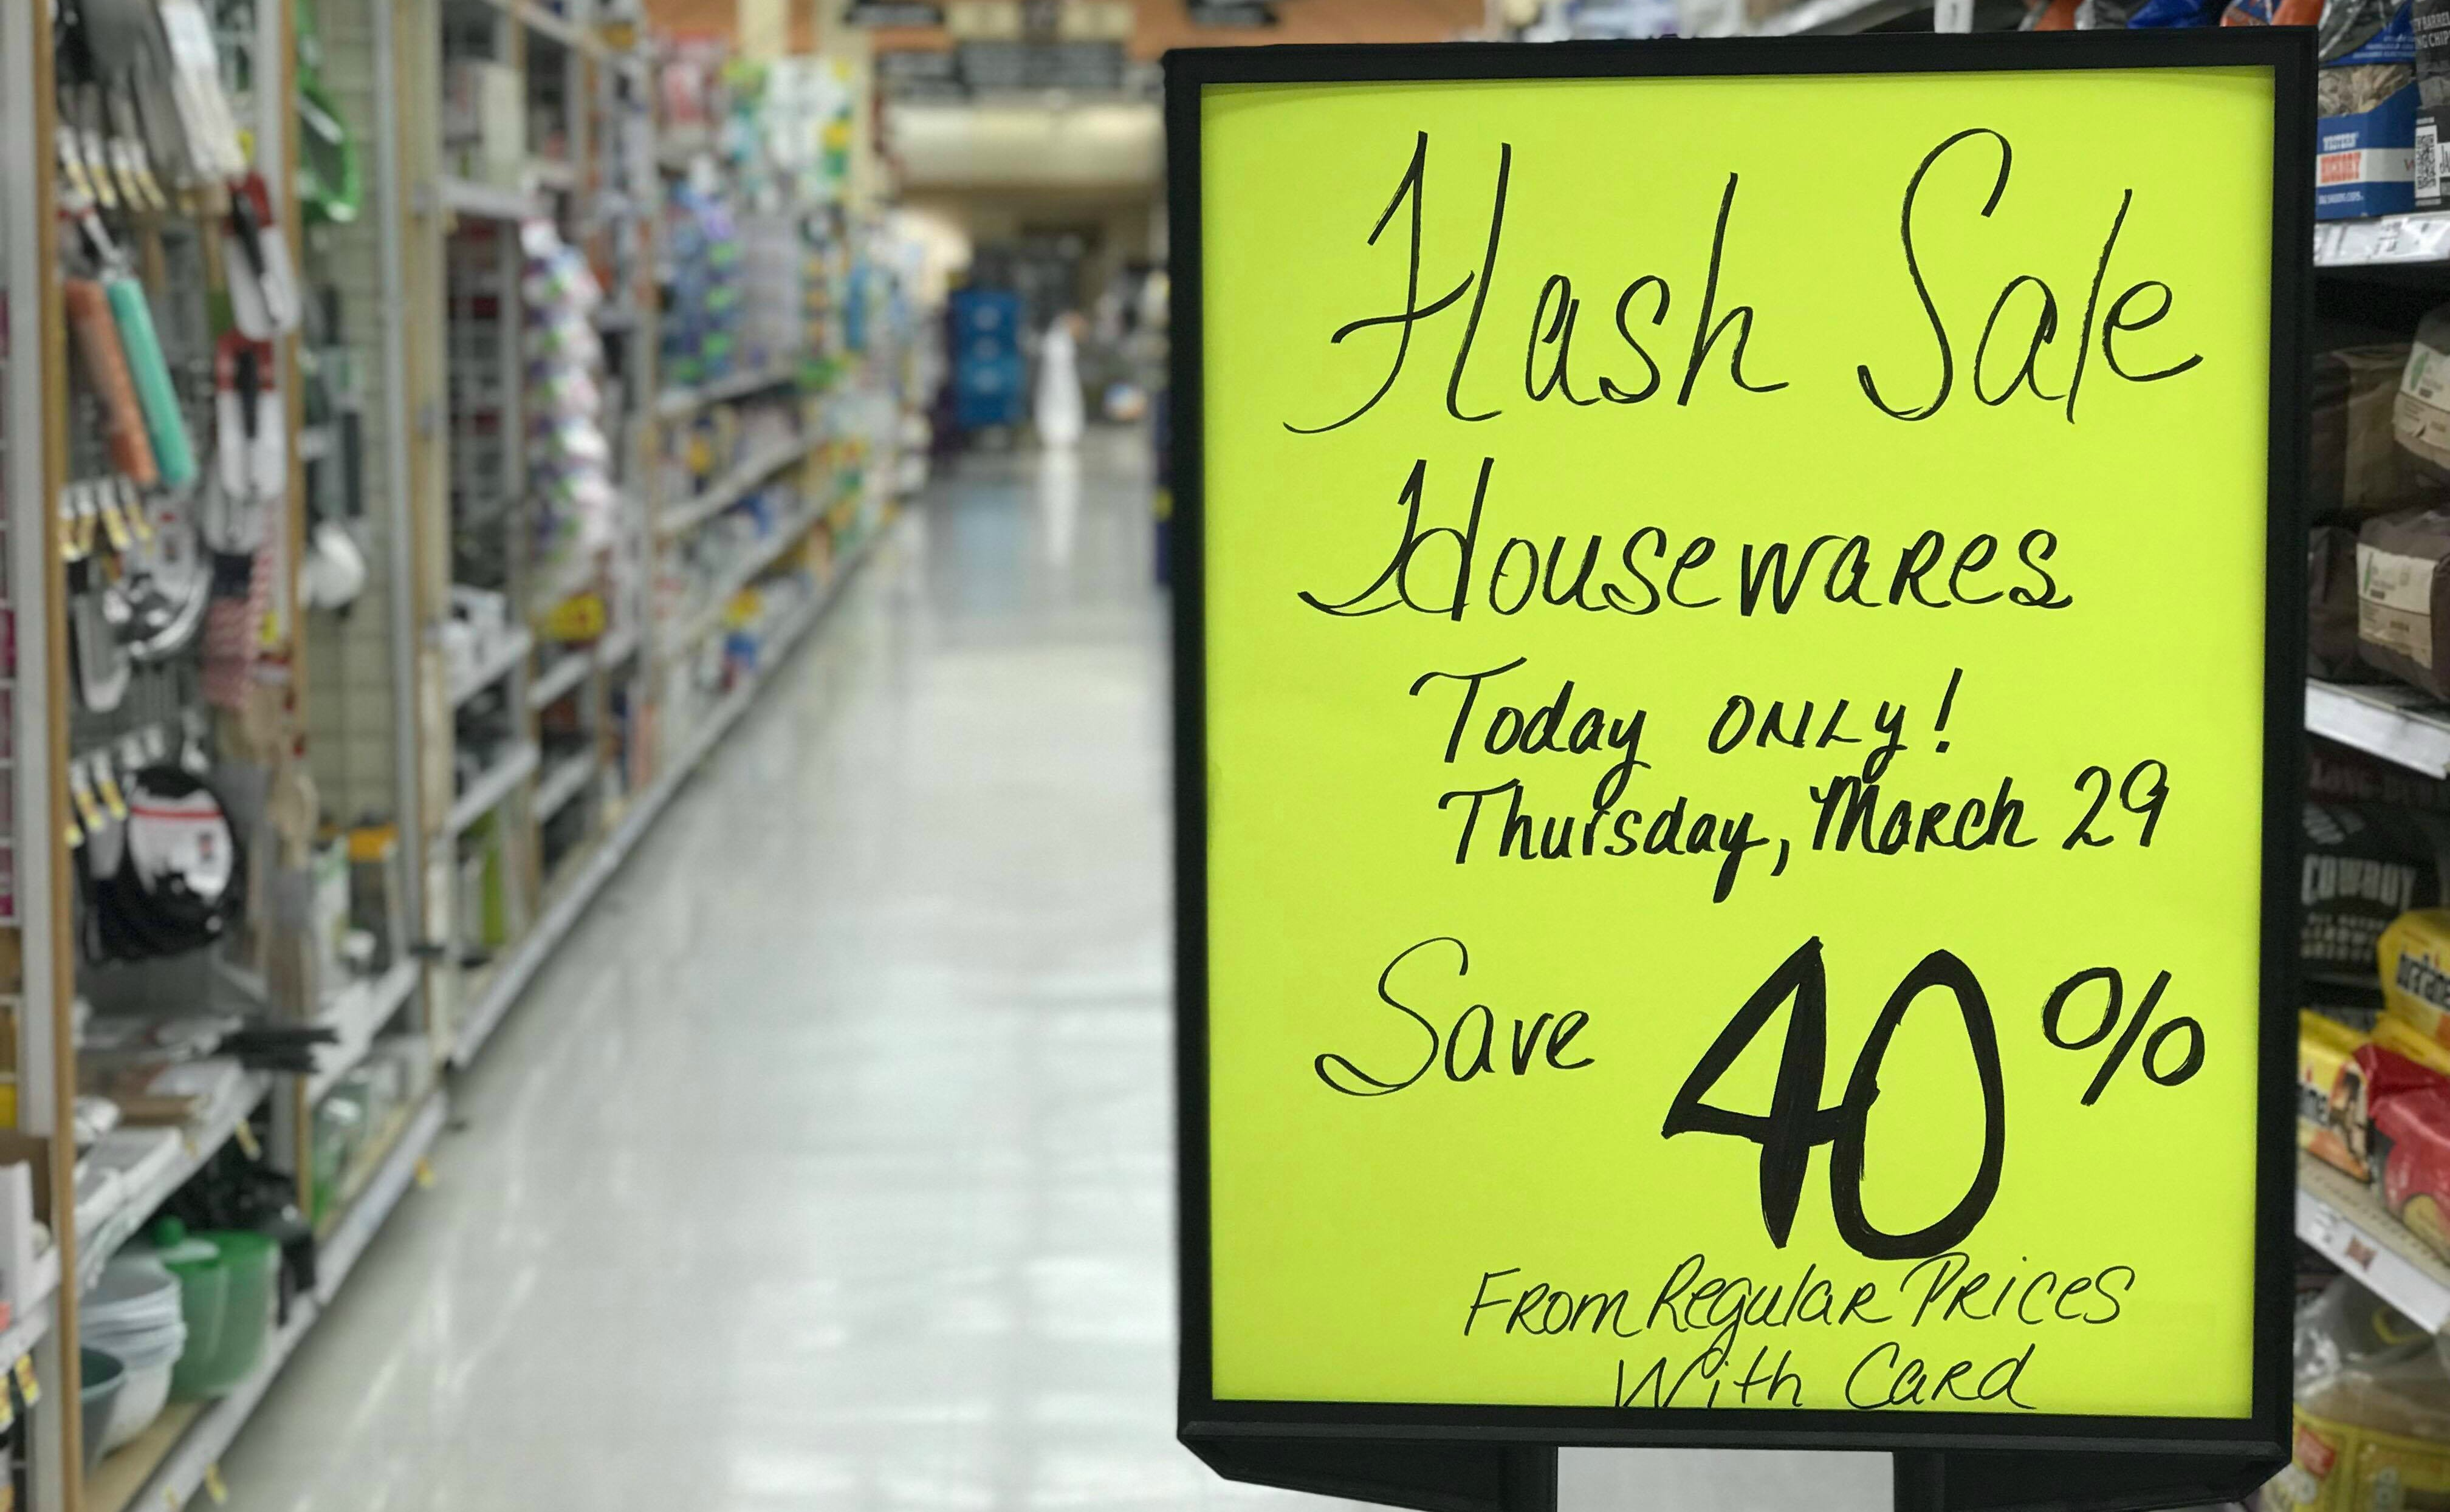 Just Head To Kroger, Scan The Housewares Aisles For The Yellow Flash Sale  Tags And Let Us Know What You Score!